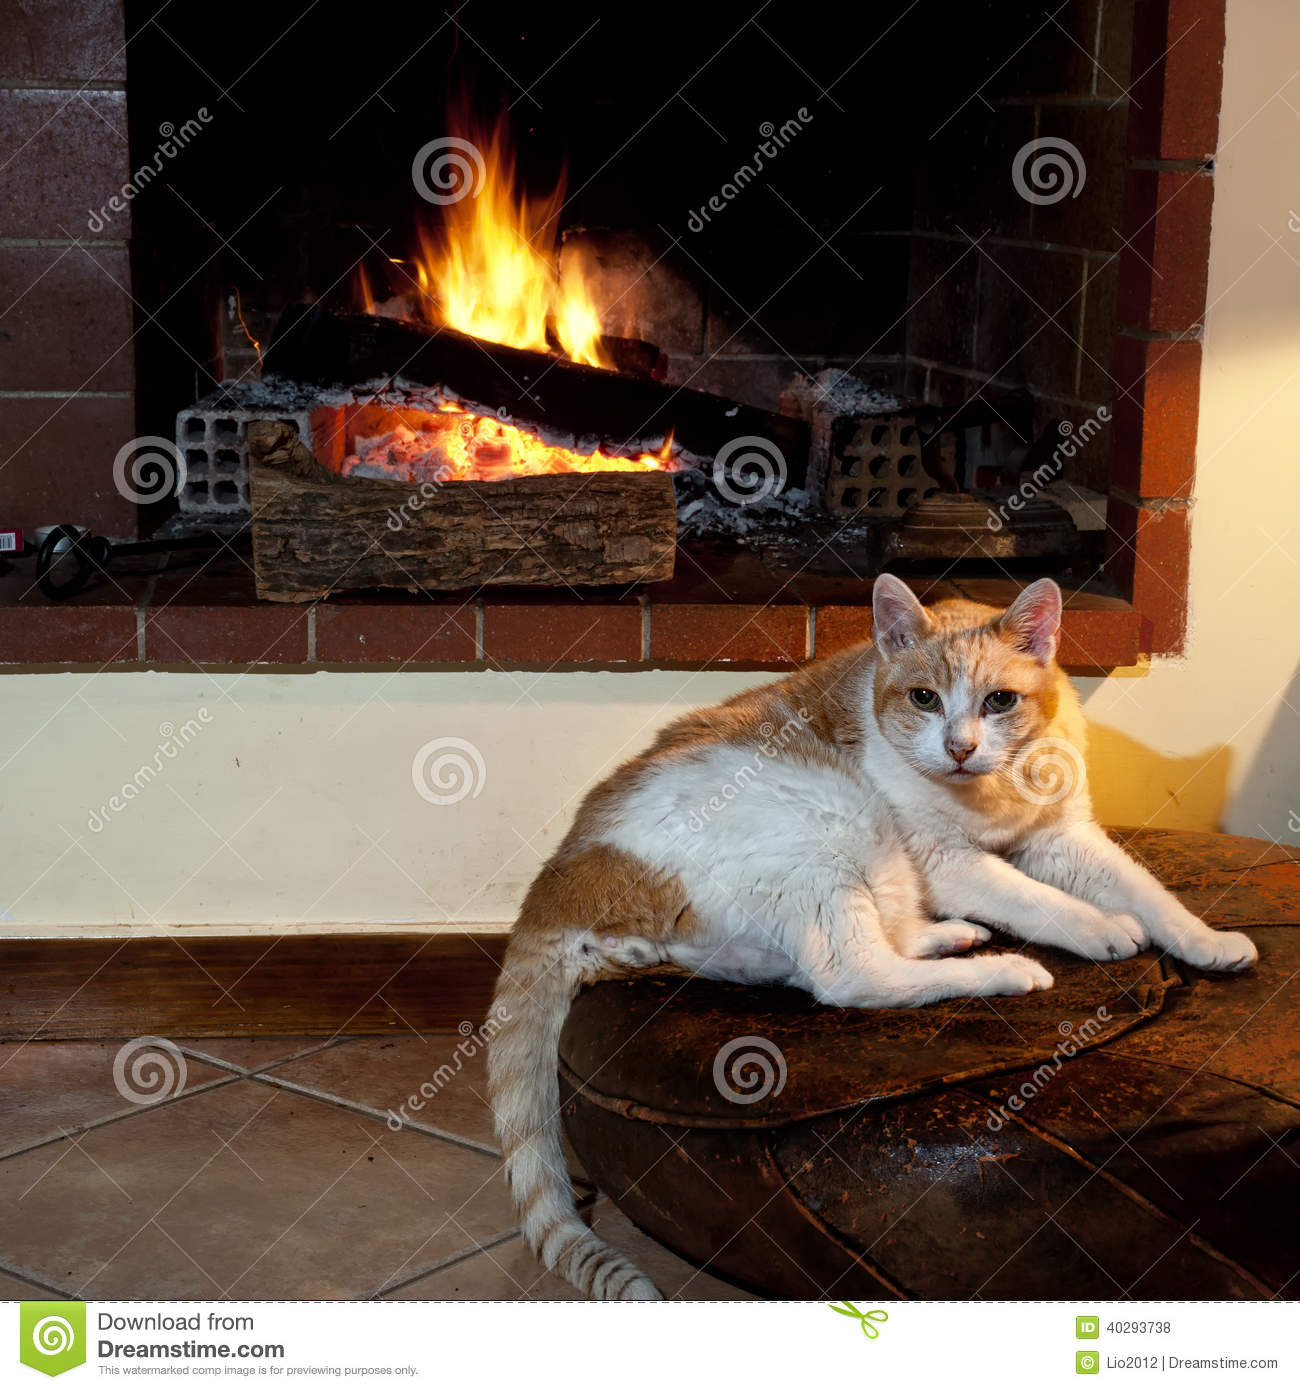 Cat In Front Of Fireplace Stock Photo - Image: 40293738